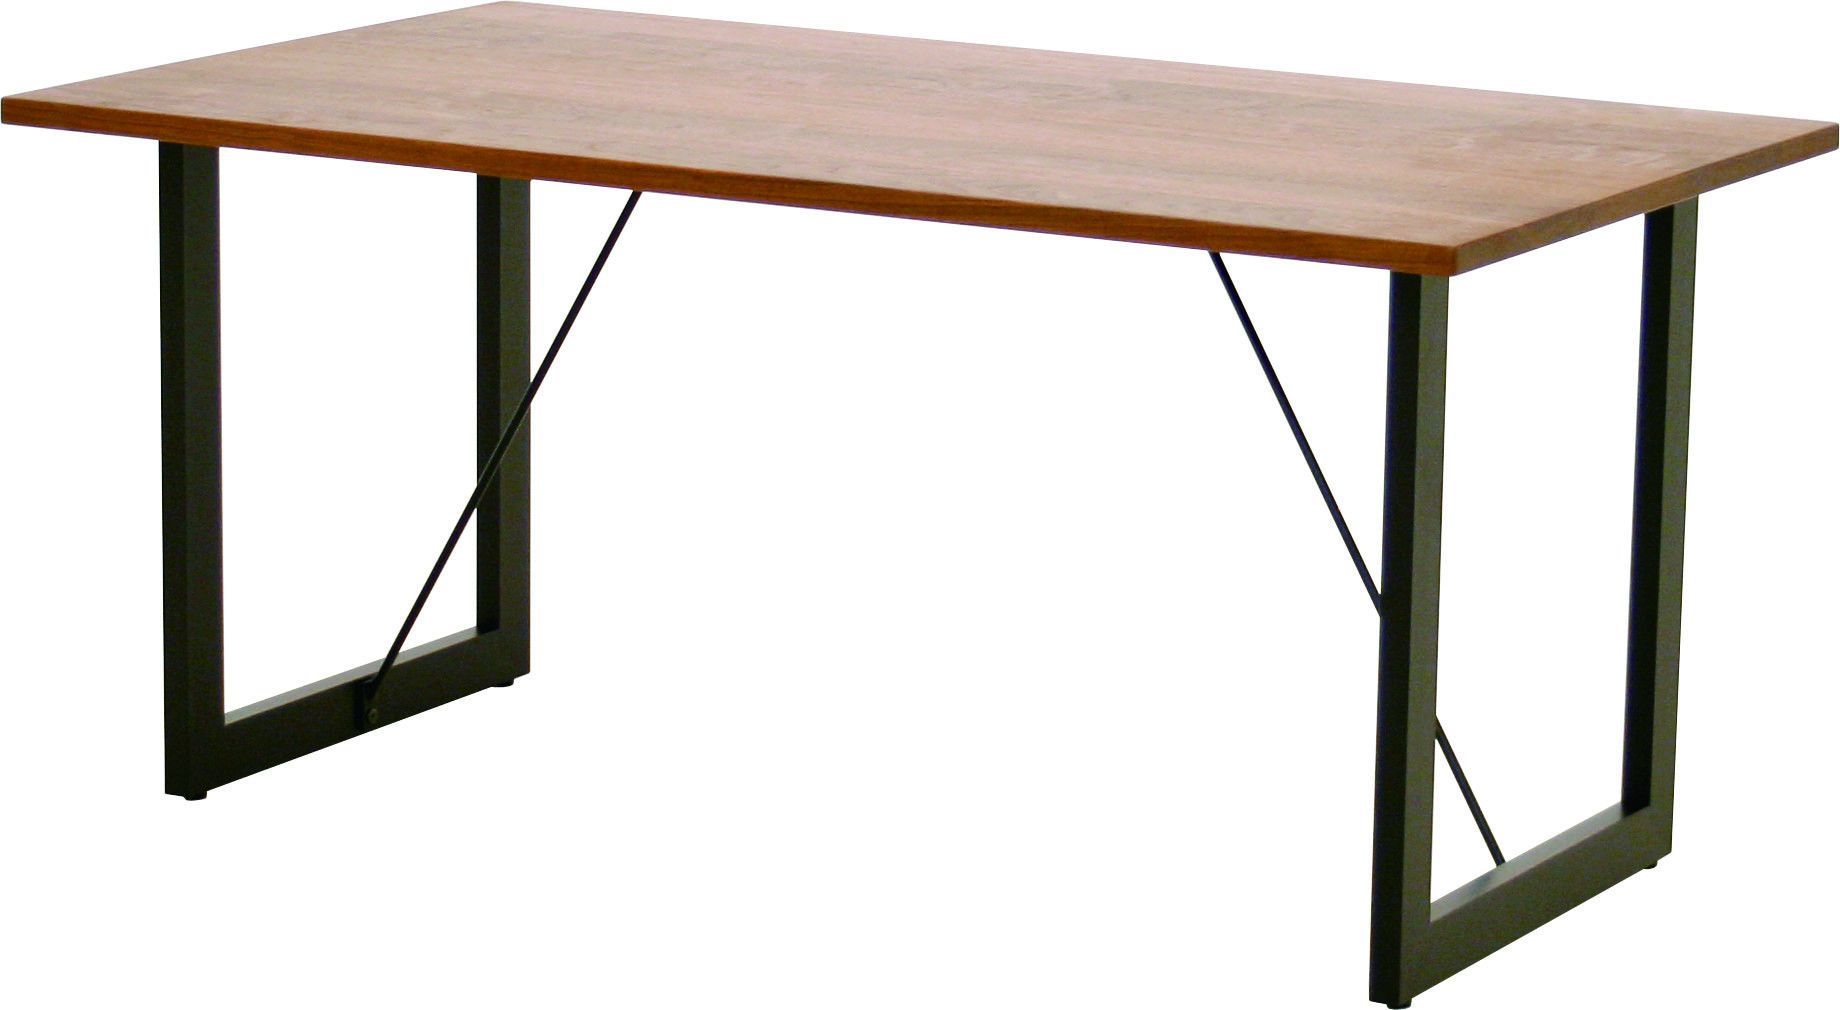 Nagano Interior - LinX Dining Table DT604 - Dining Table